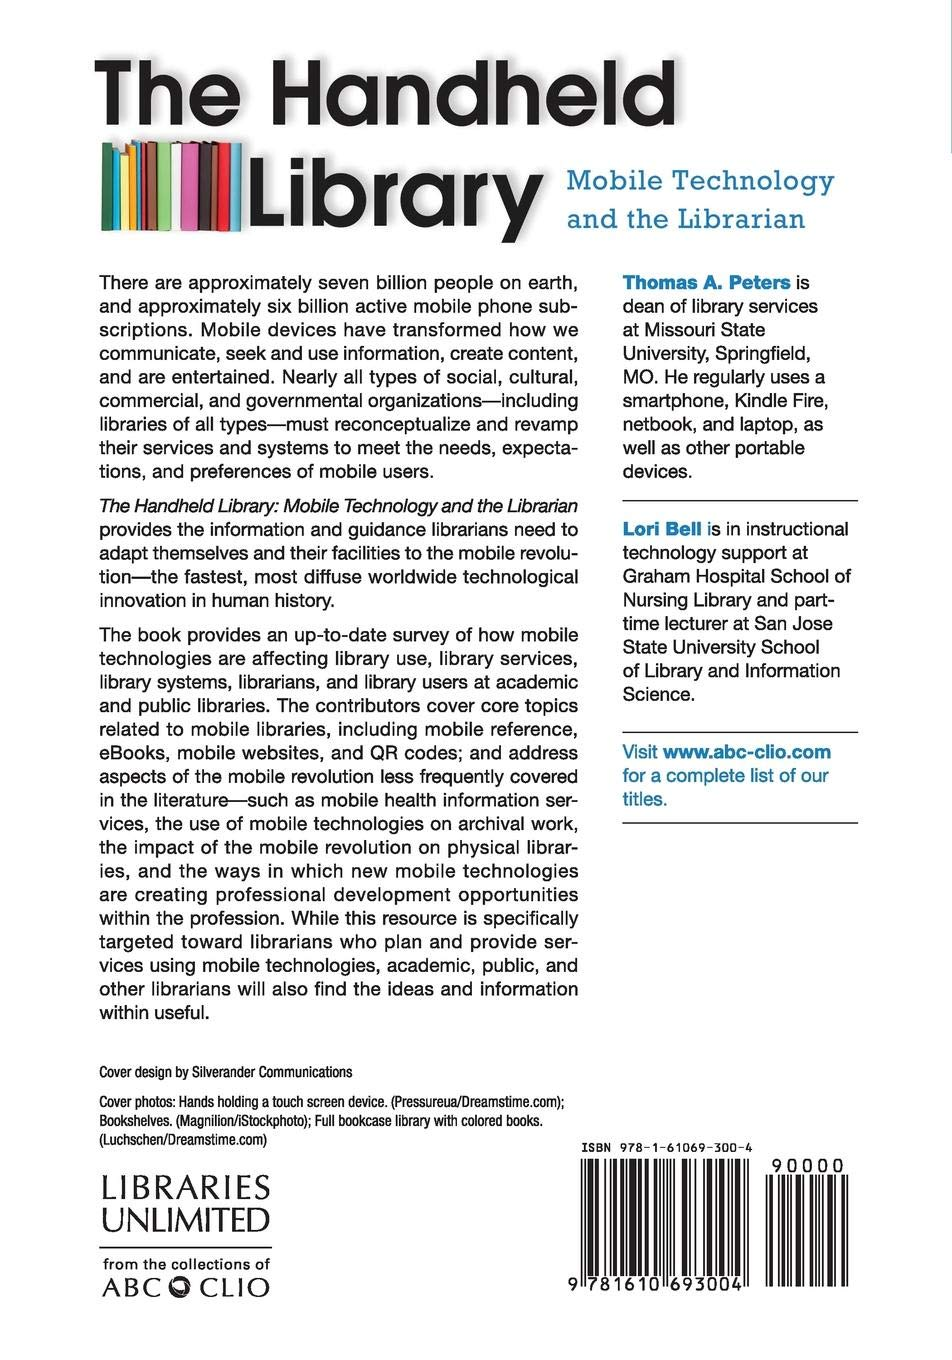 The Handheld Library: Mobile Technology and the Librarian: Mobile Technology and the Librarian